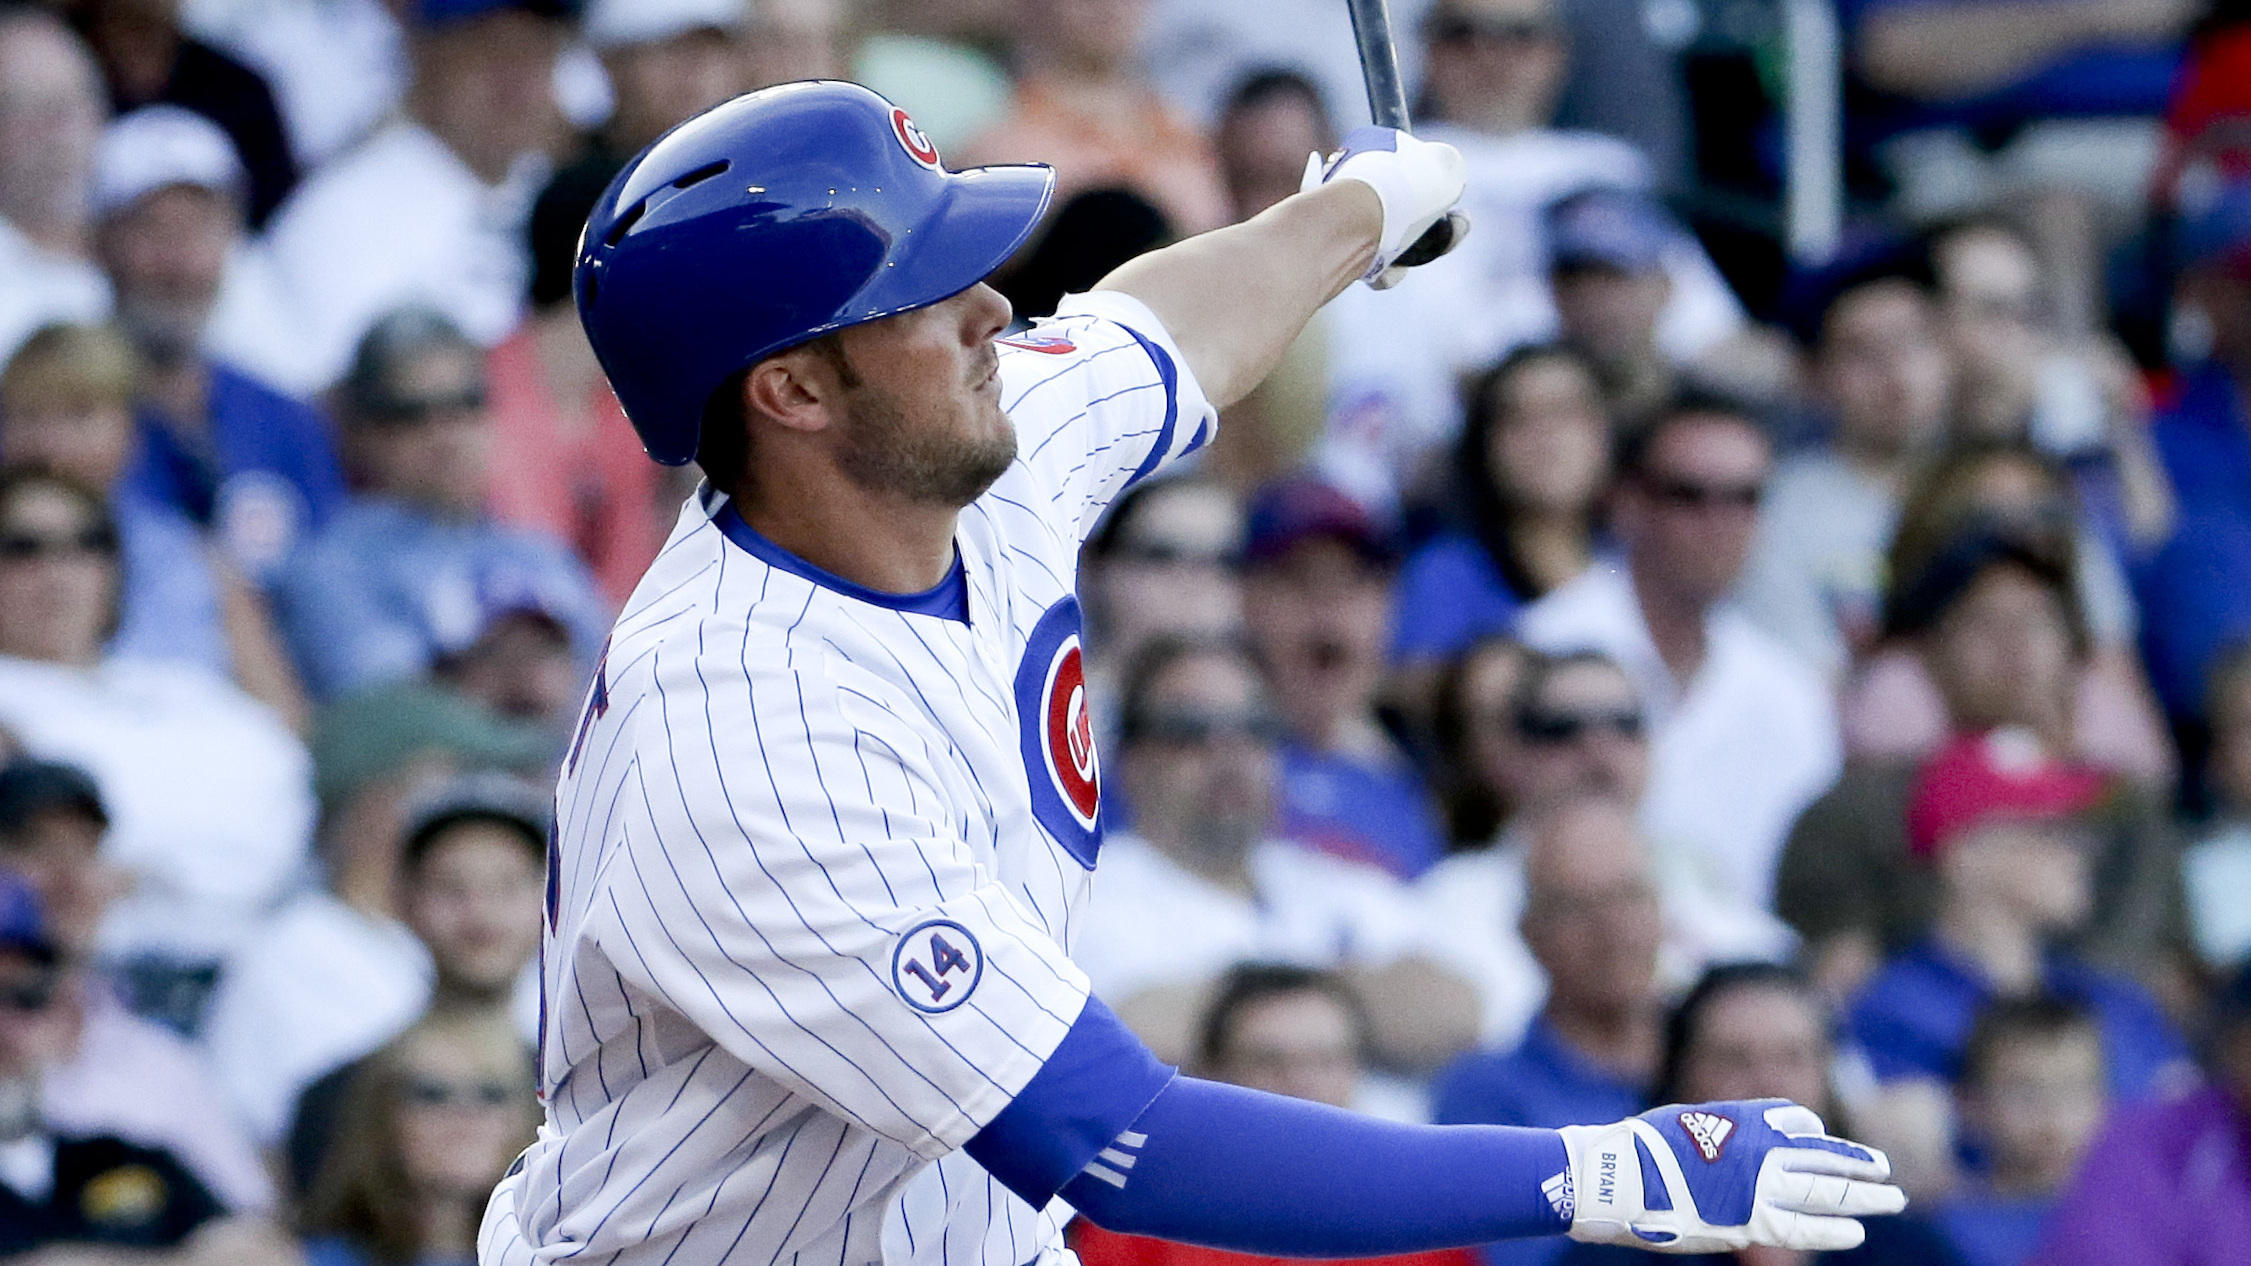 Can Top Slugger Joining Cubs End 106 Years Of Sadness